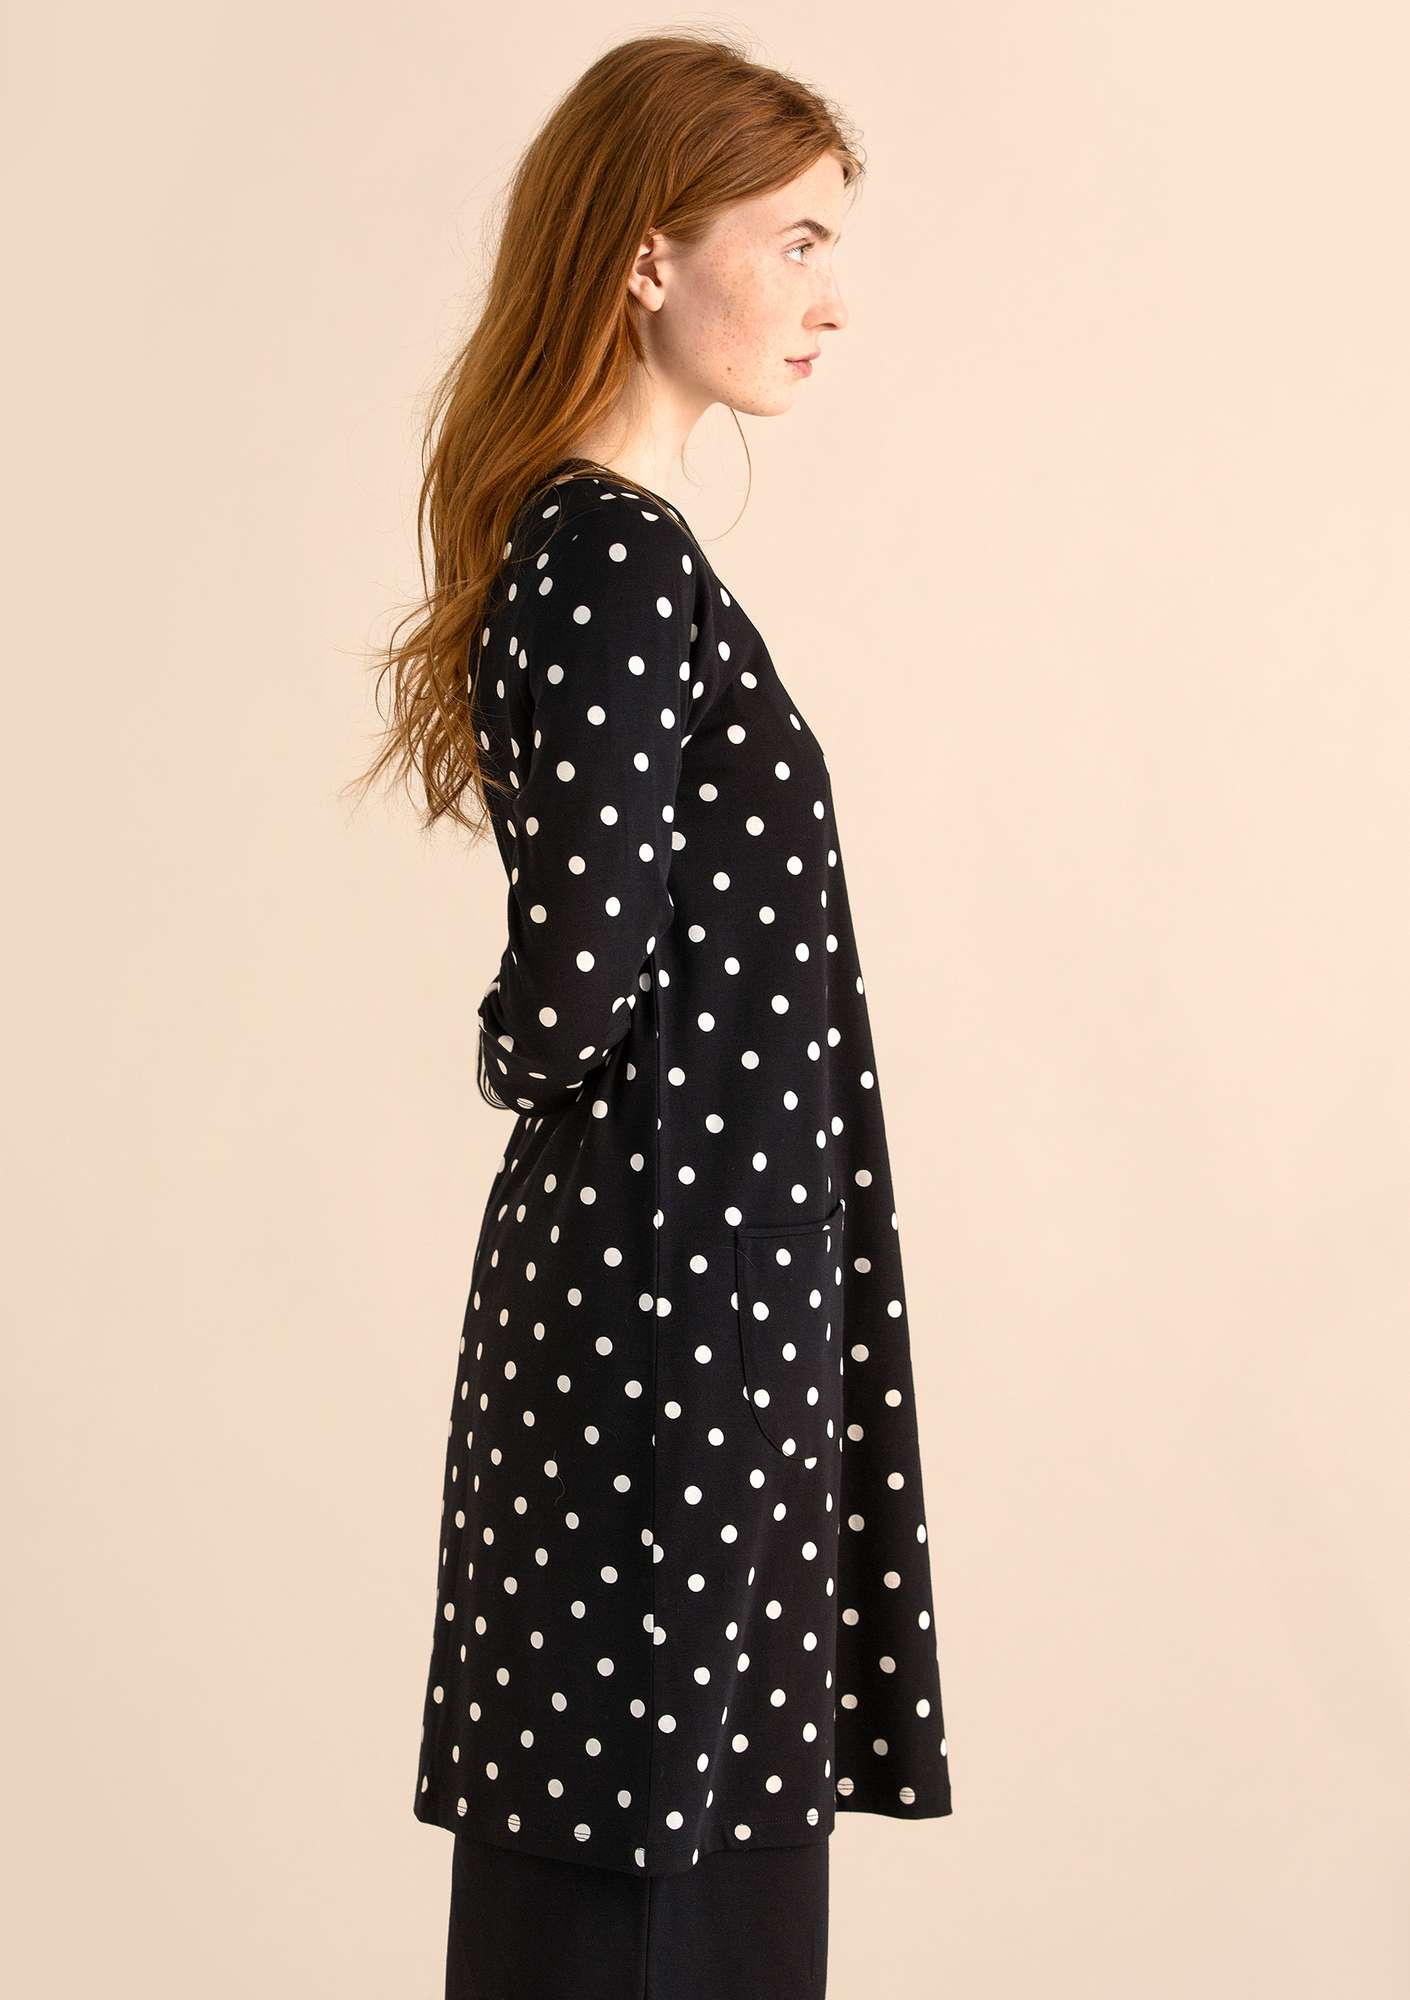 DOT dress in modal/organic cotton/elastane black/patterned